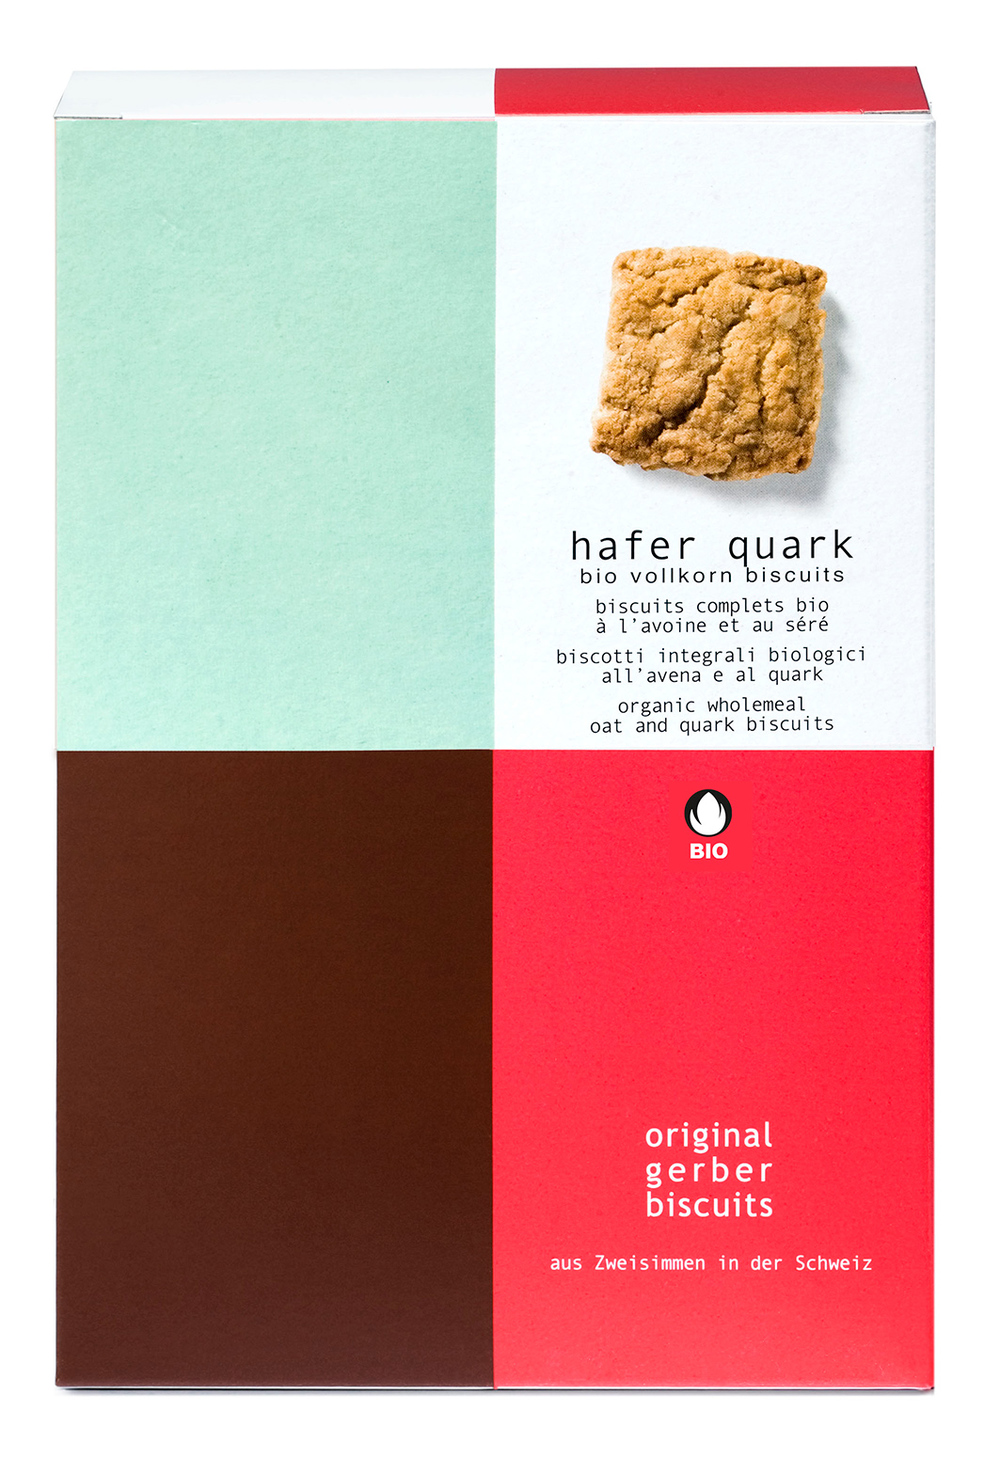 Bio Hafer Quark Biscuits